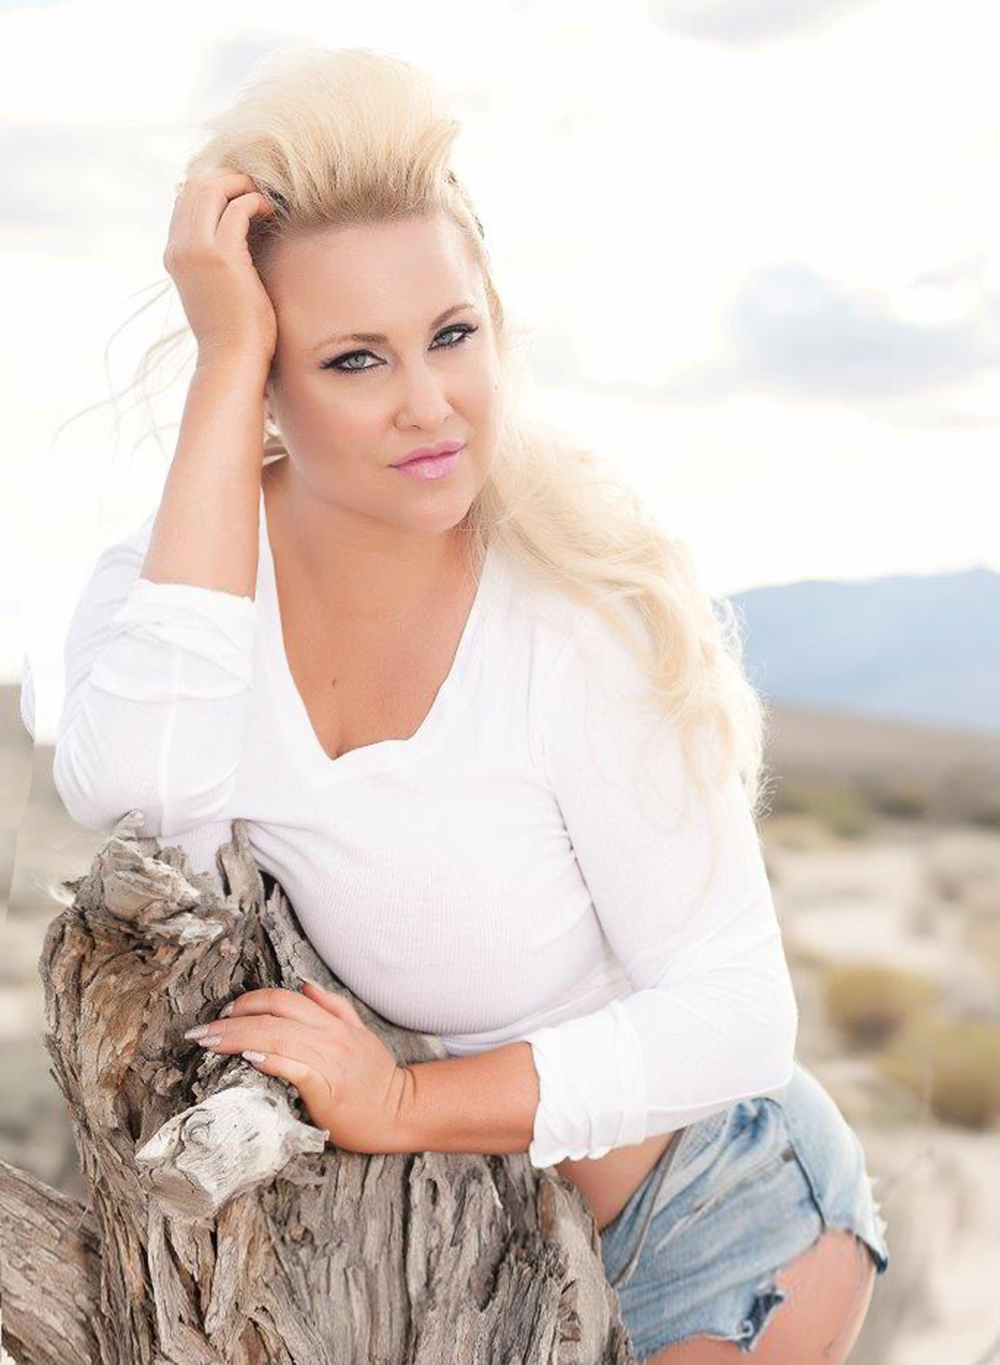 amber lynn's profile at sheri's ranch a legal brothel in nevada